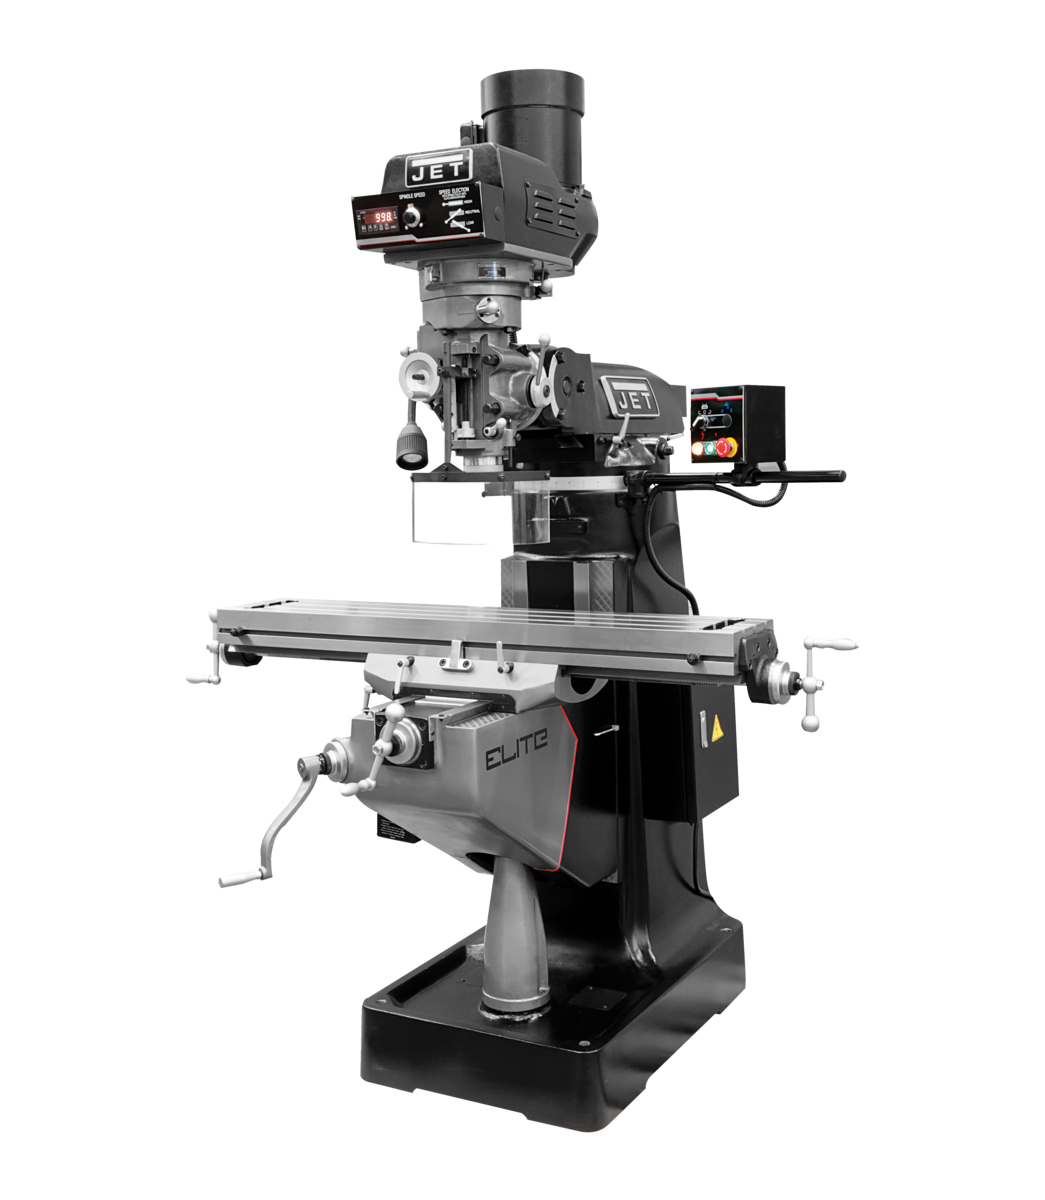 EVS-949 Mill with 2-Axis ACU-RITE 303  DRO and X, Y, Z-Axis JET Powerfeeds